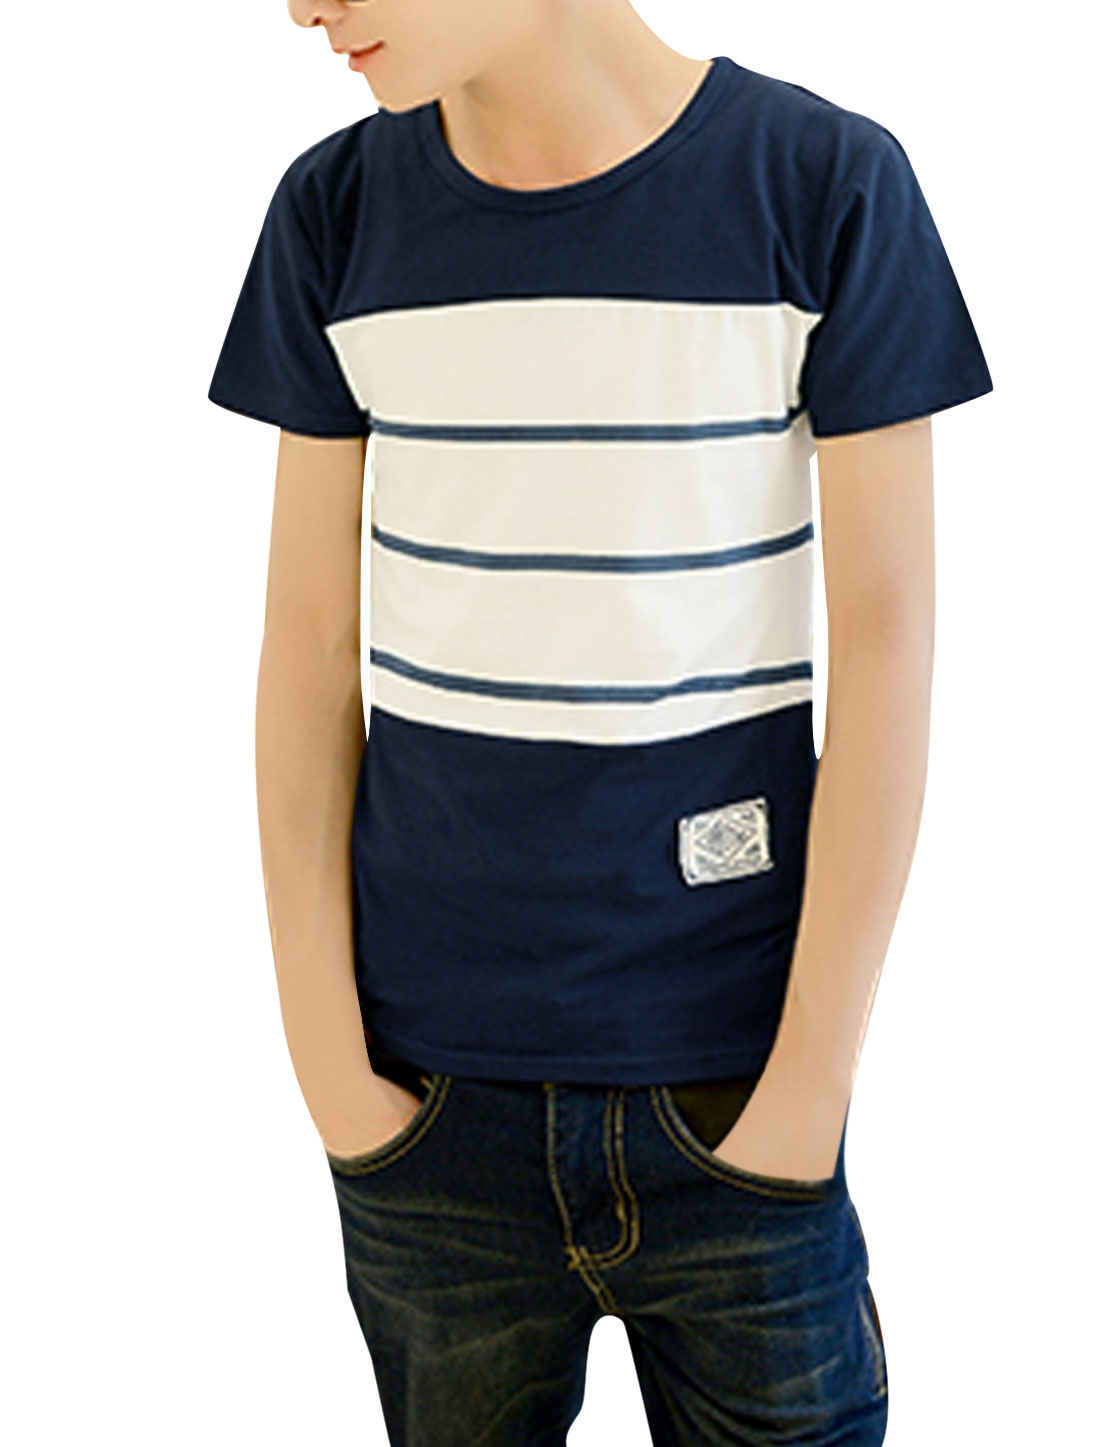 Men Short Sleeve Stripes Colorblock Trendy Slim Tee Navy Blue White M